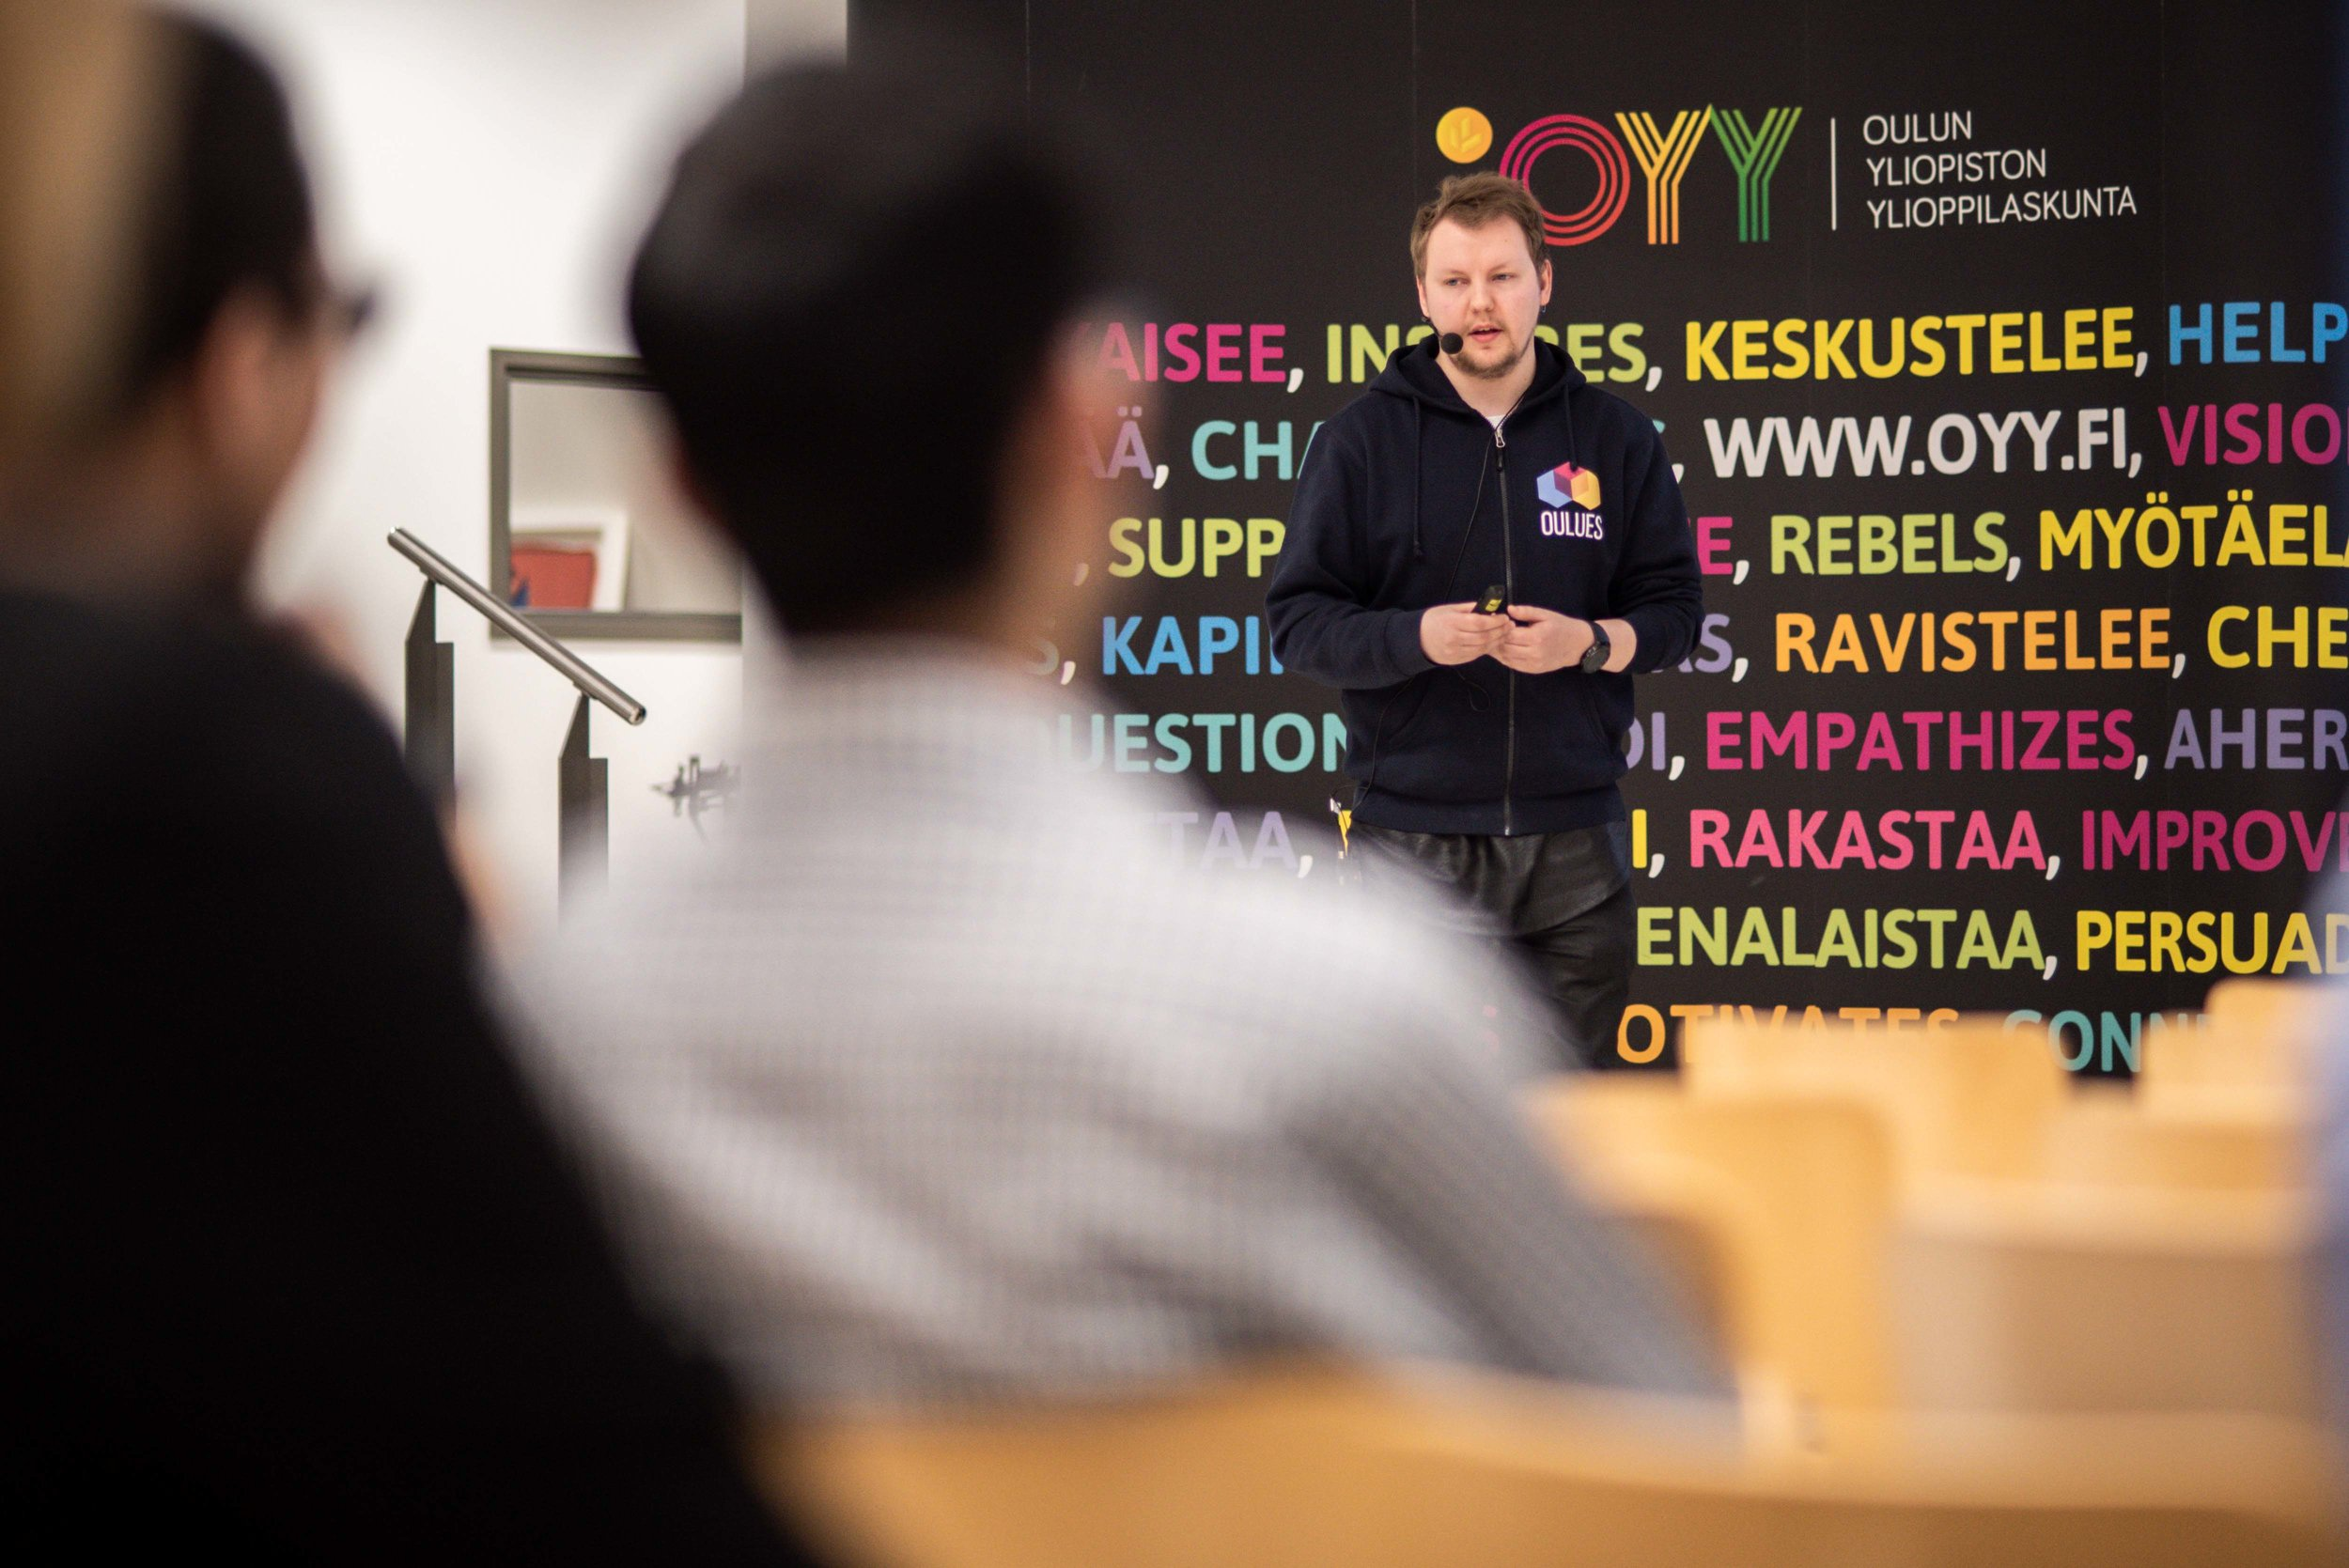 Yeah, 30 minutes keynote on skills and mindset that make you a success in working life at the University of Oulu, in English. Here's the proof I did it. It was the Löyly event that was organized by the Student Union of University of Oulu. Photo: Antti Törmä